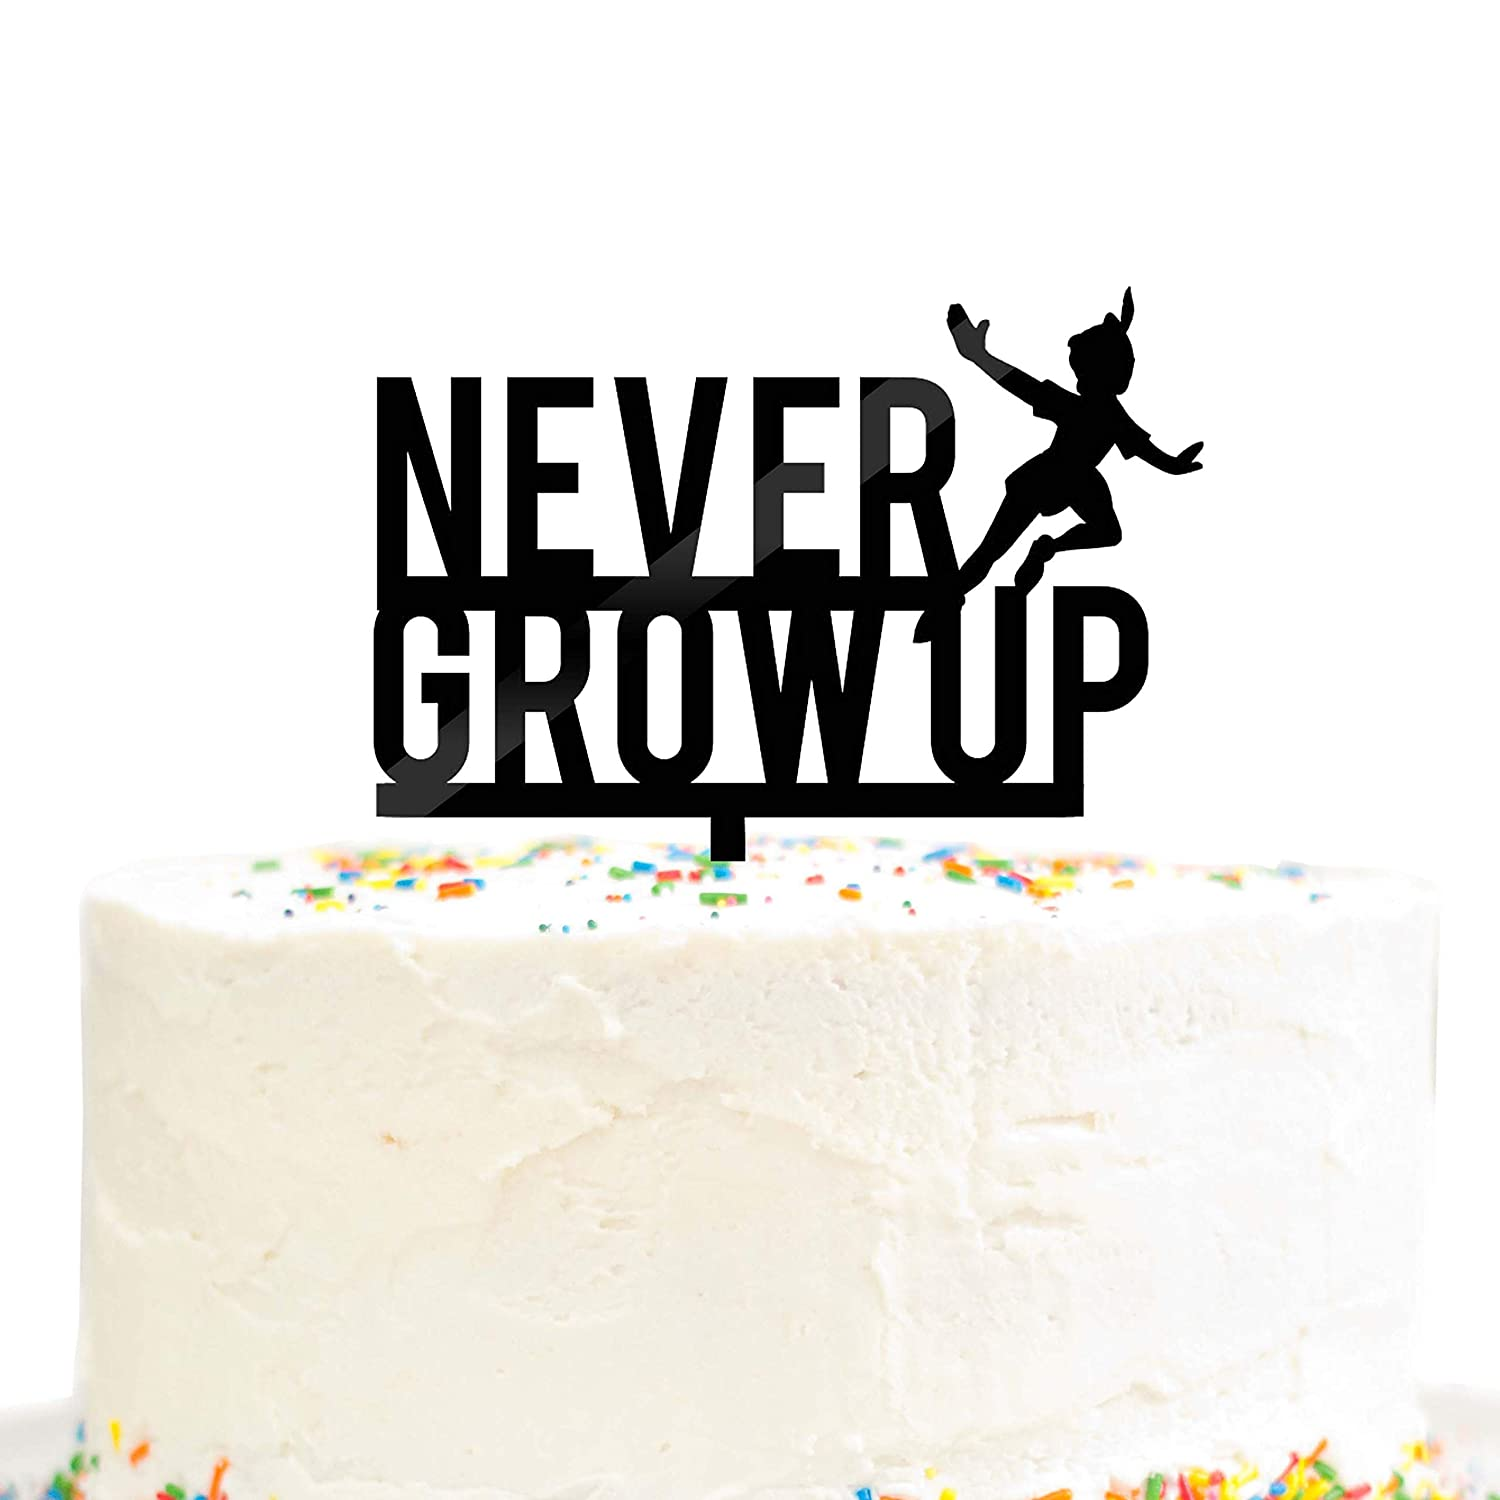 Never Grow Up Happy Birthday Party Cake Topper Black Acrylic Lost Boys Peter Pan Party Decoration